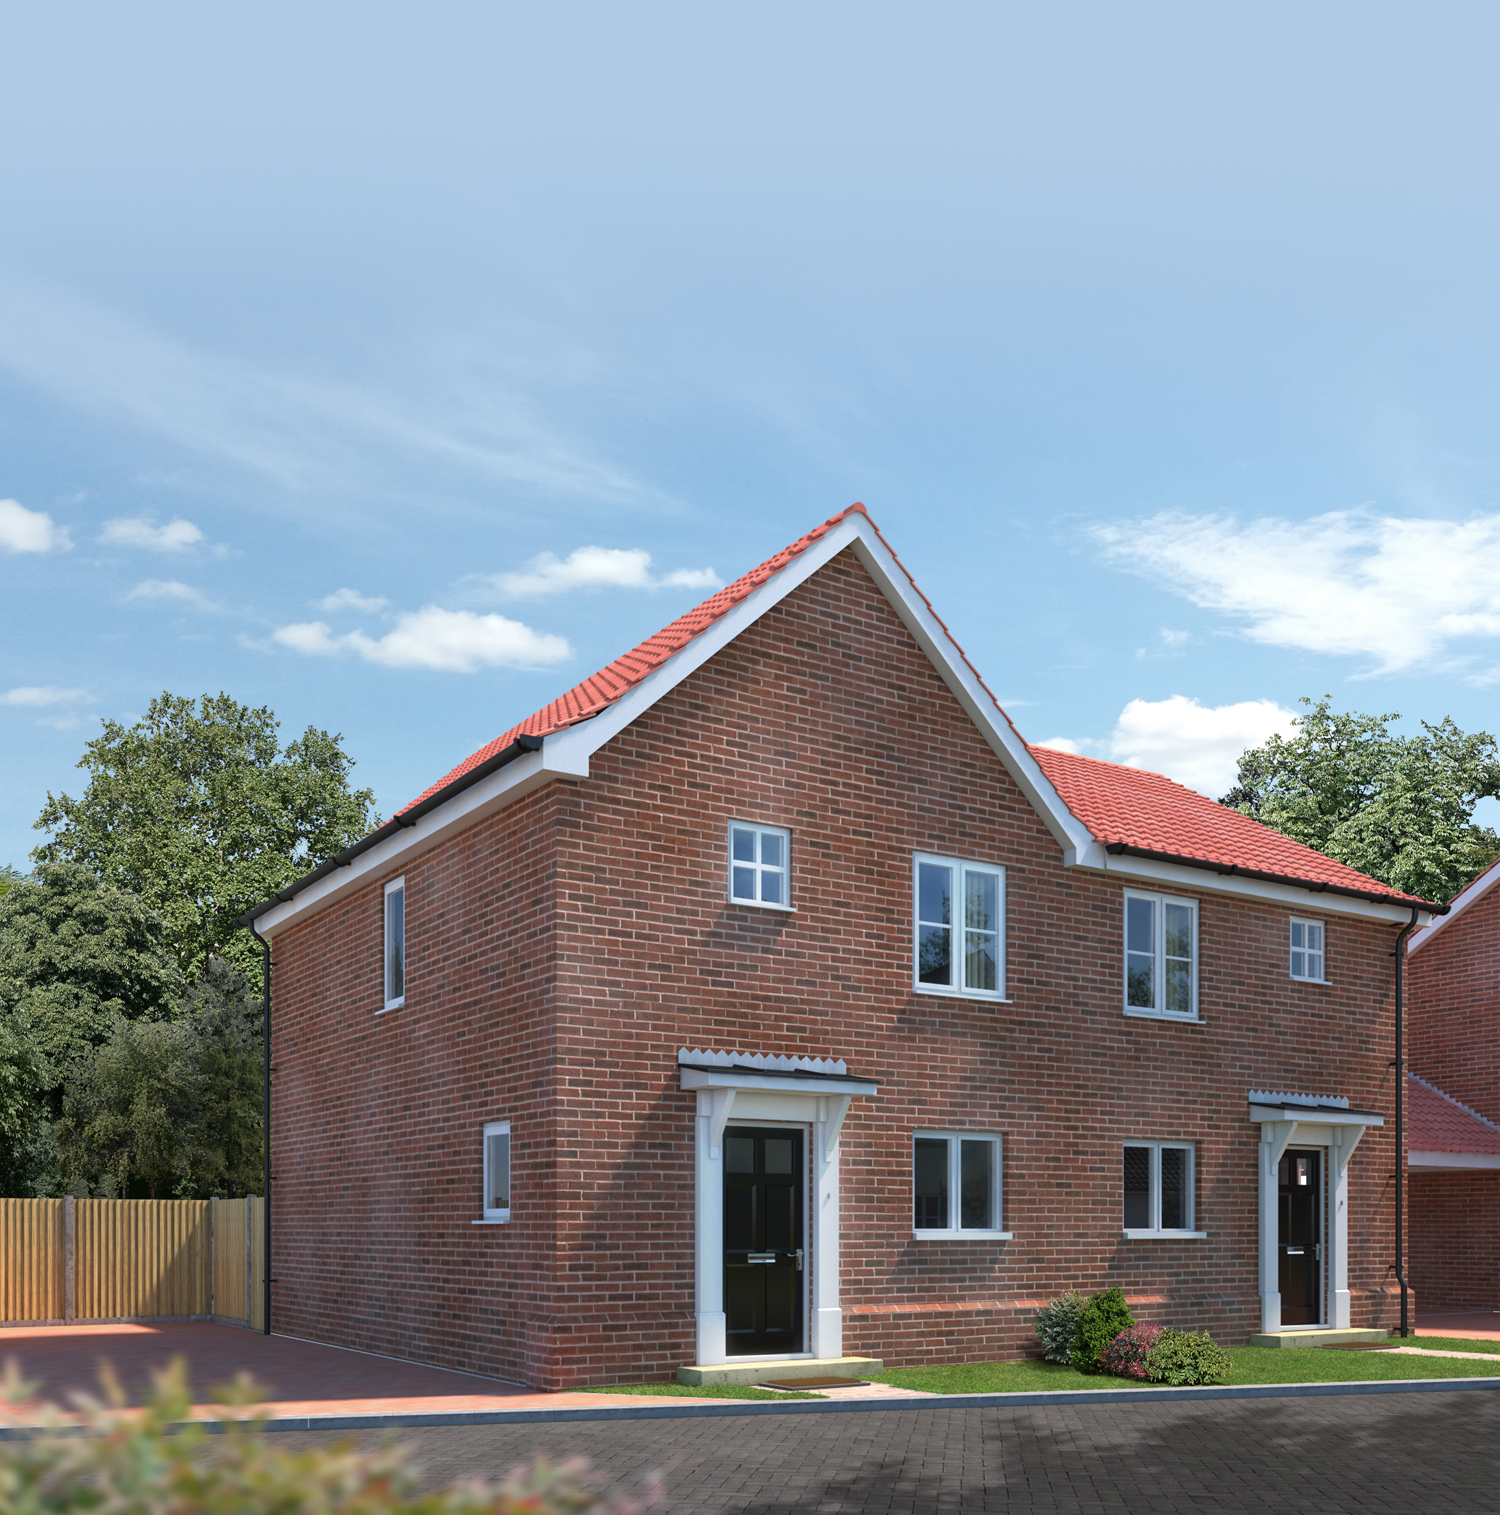 The Sandringham- Brick Fronted-Plots 26, 27, 30 and 31